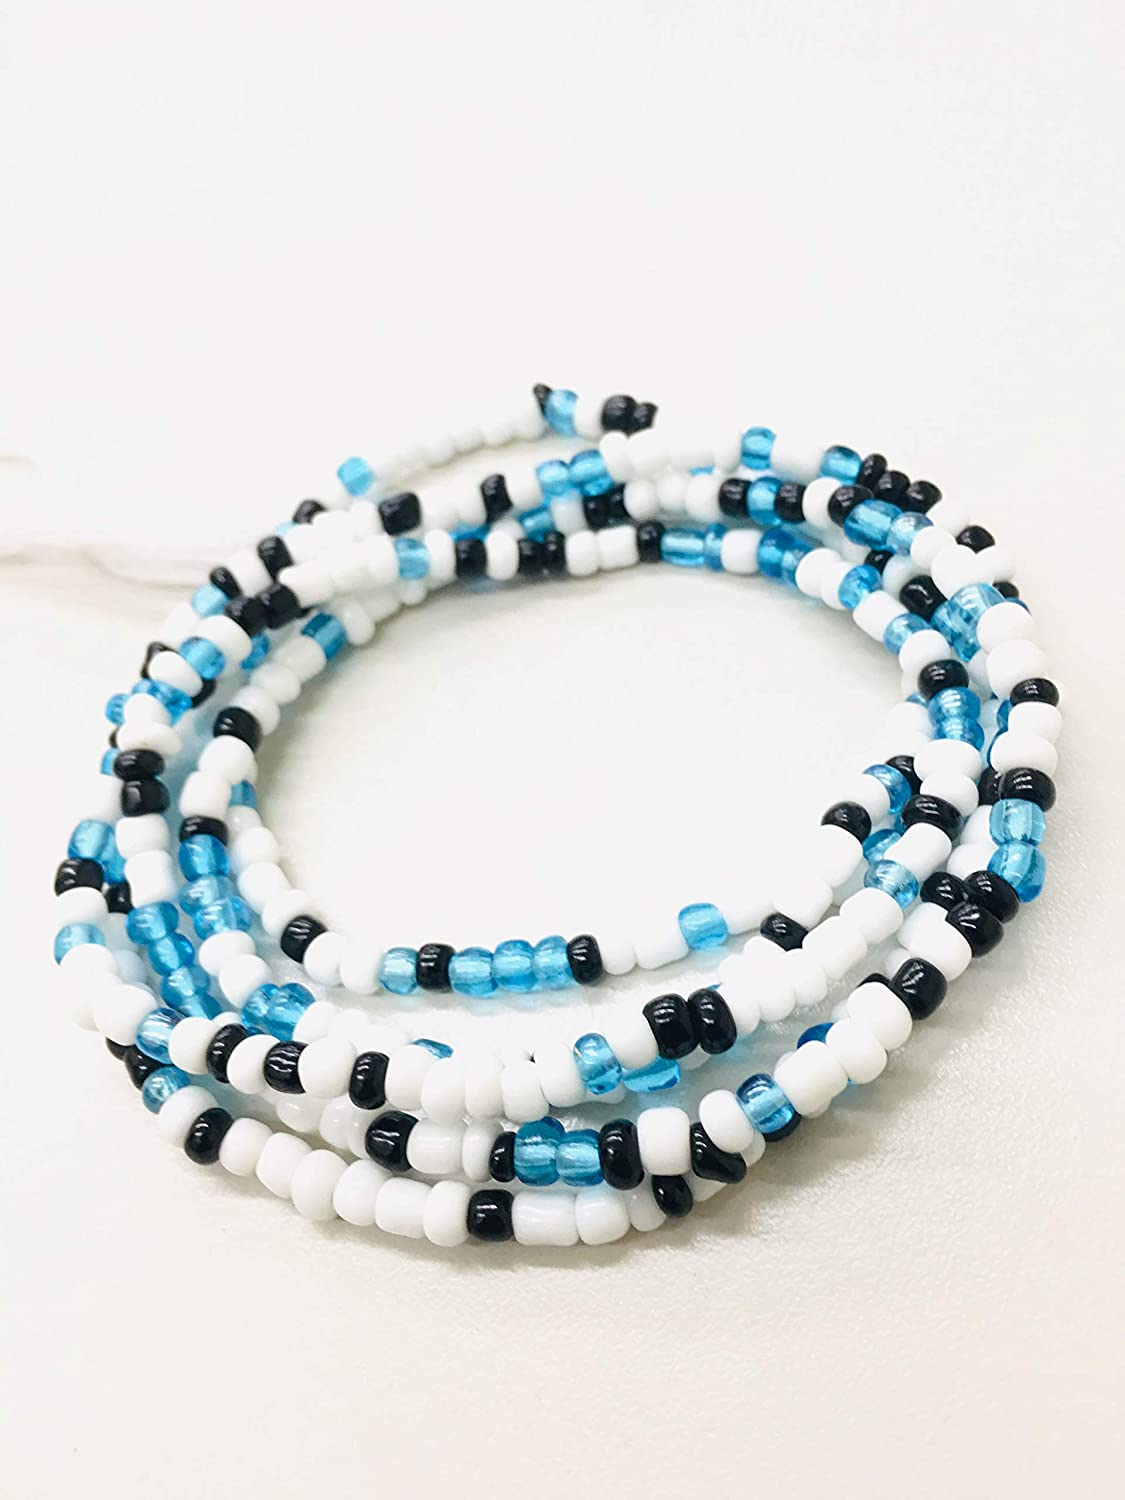 Blue 42 Inch Tie-On Solid Color African Waist Bead Strand